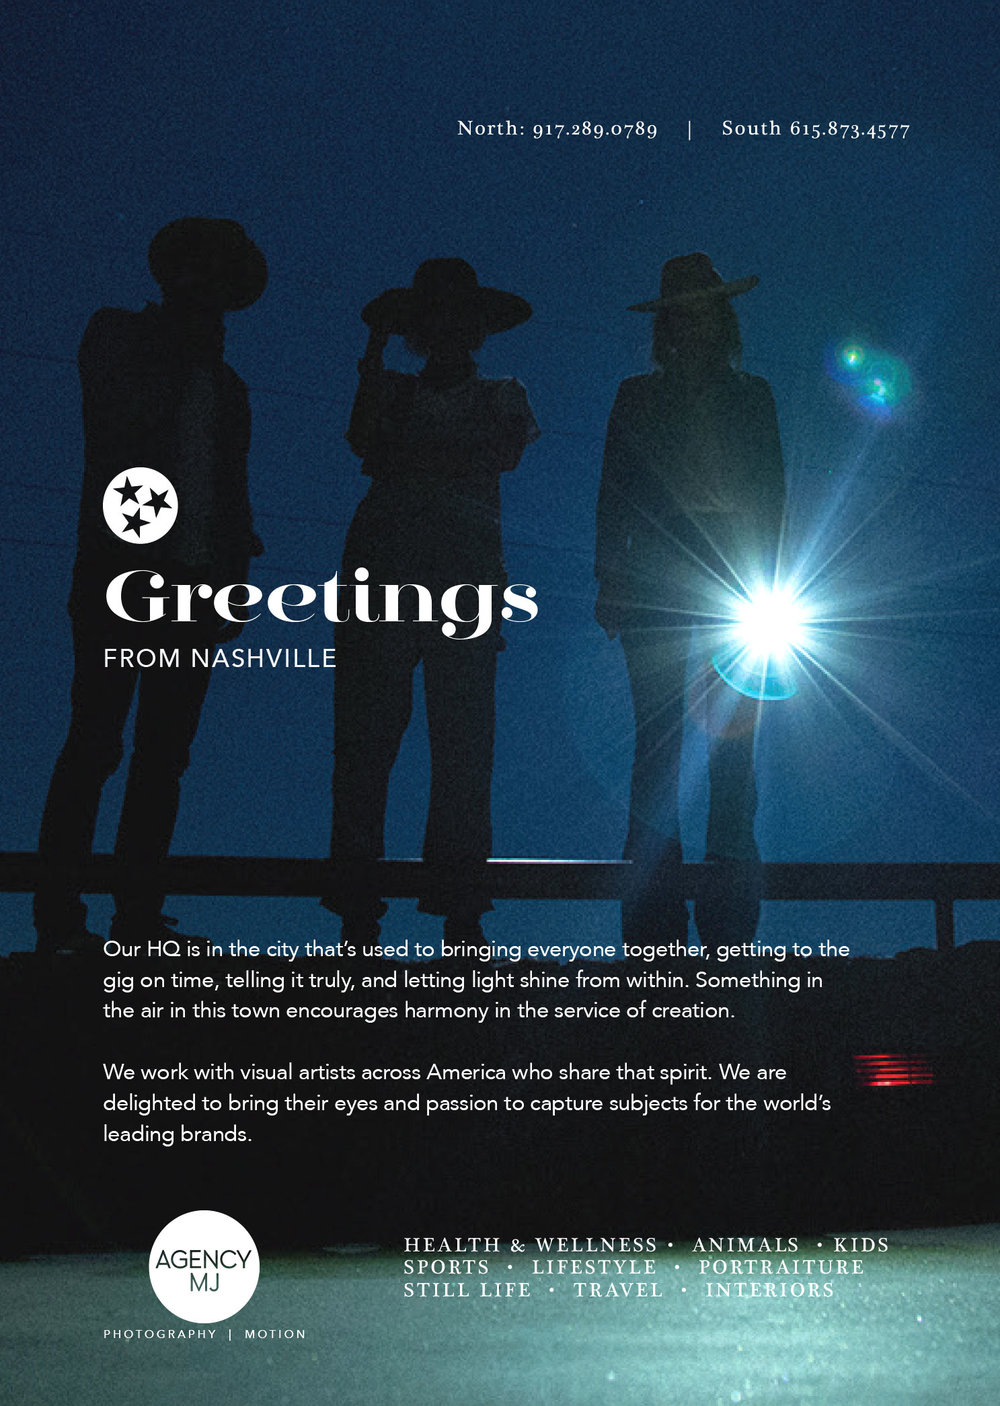 Greetings from Nashville.  Our HQ is in the city that's used to bringing everyone together, getting to the gig on time, telling it truly, and letting light shine from within. Something in the air in this town encourages harmony in the service of creation.  We work with visual artists across America who share that spirit. We are delighted to bring their eyes and passion to capture subjects for the world's leading brands.